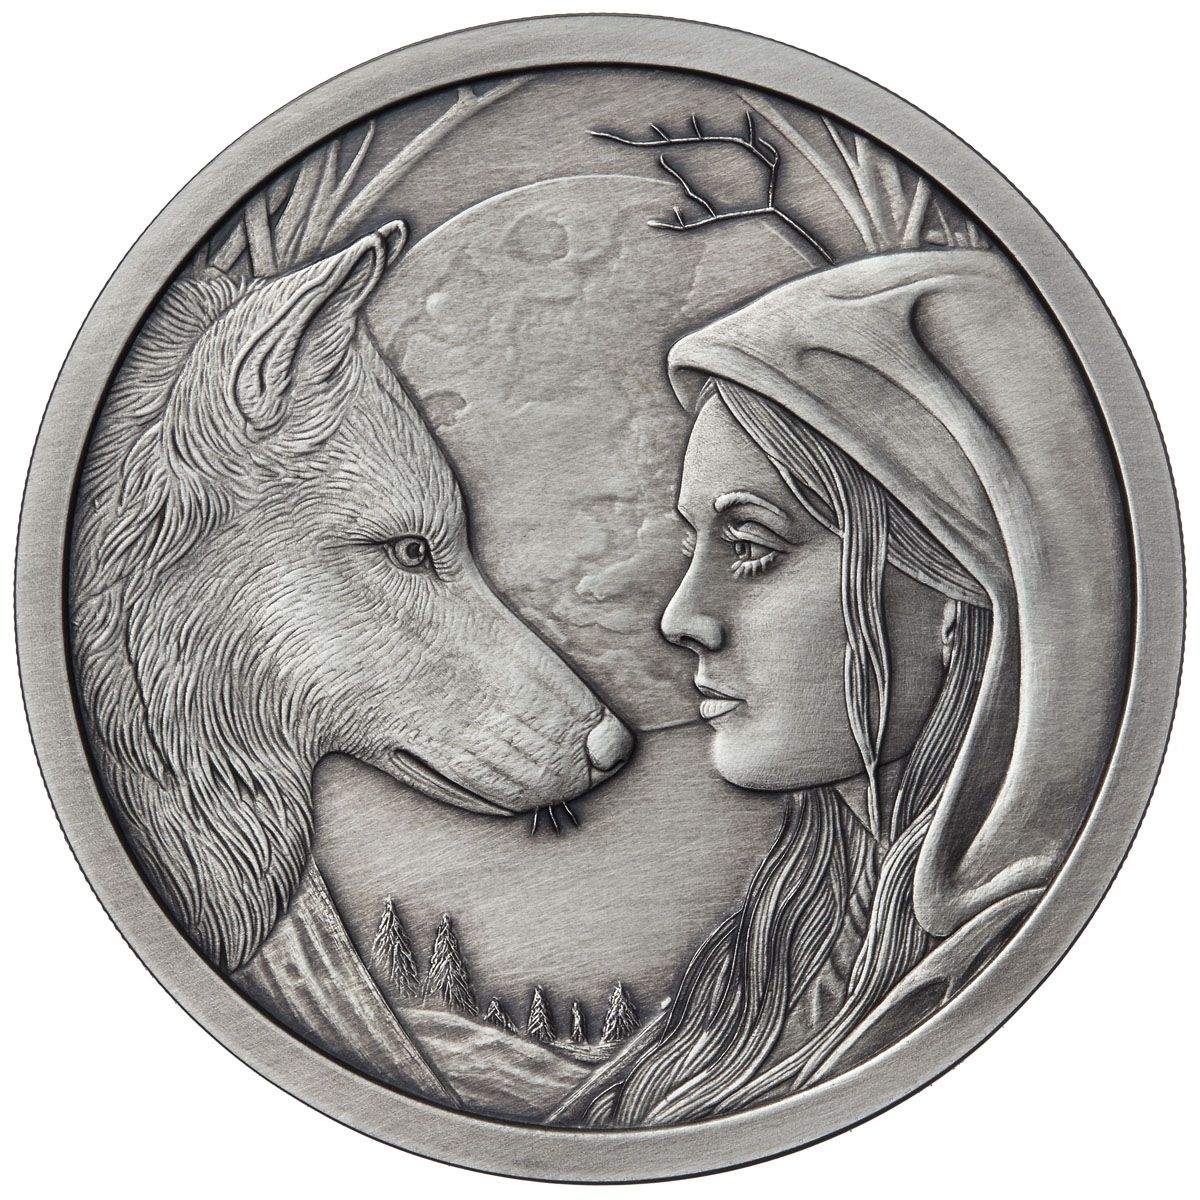 1 OZ SILVER COIN LISA PARKER COLLECTION WHAT LIES WITHIN  2ND IN SERIES 750 MINT